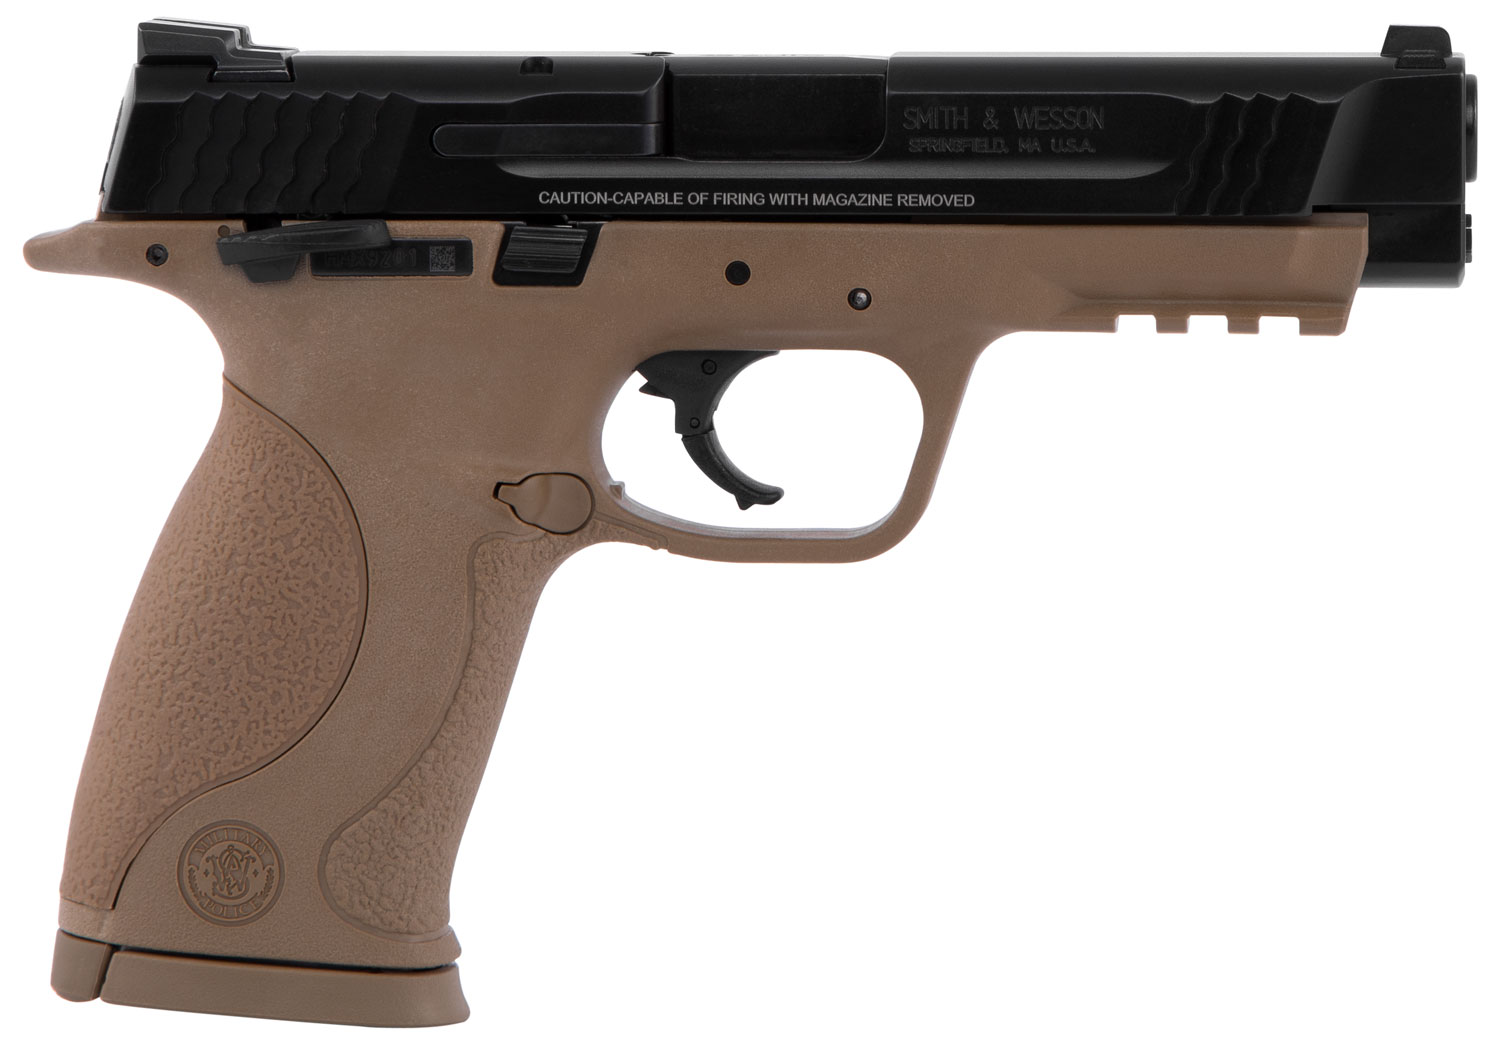 Smith & Wesson LE 309556 M&P 45  45 Automatic Colt Pistol (ACP) Double 4.5